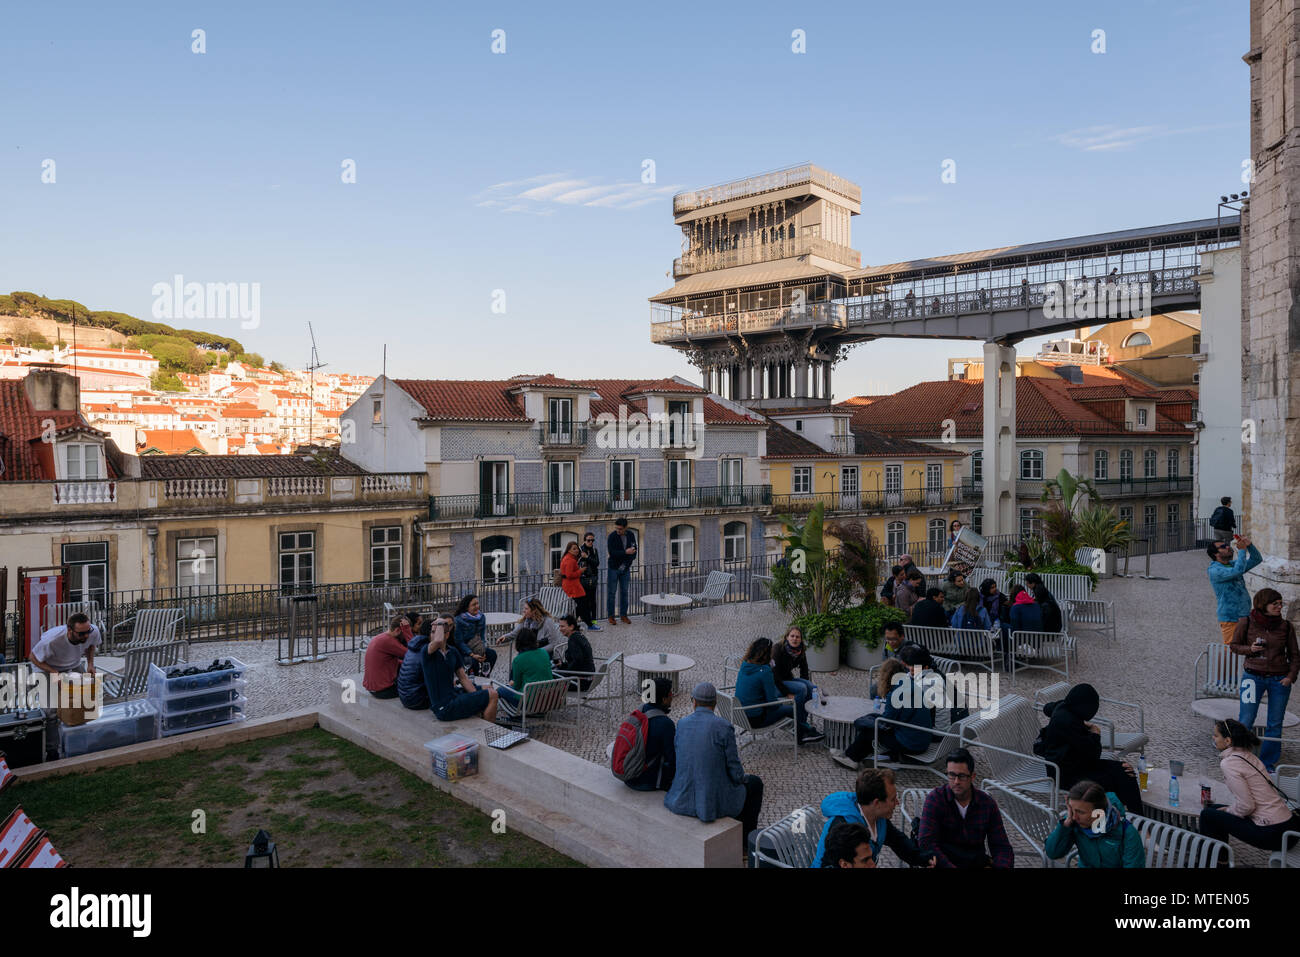 Lisbon, Portugal - May 03, 2018: People are enjoying their drink in an outdoor bar near the  Santa Justa Lift / Elevador de Santa Justa, Lisbon, Portu Stock Photo